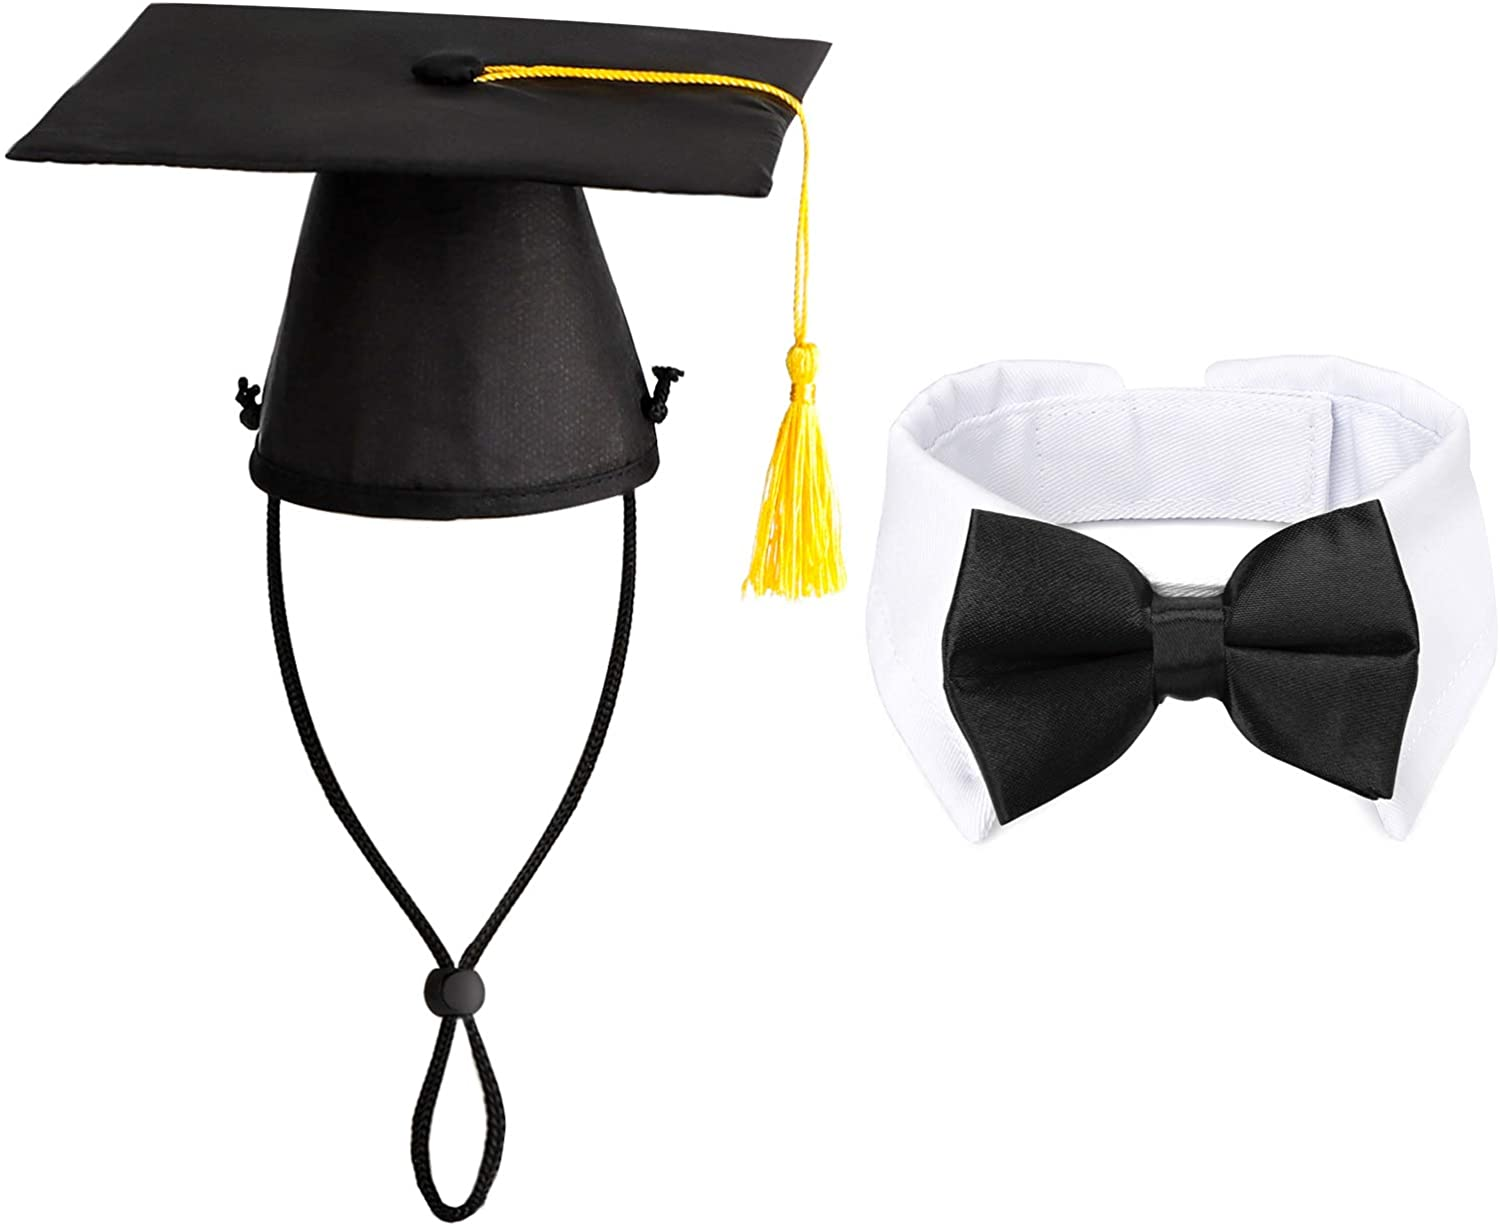 Segarty Pet Graduation Cap, with Dog Bow Tie, Dog Graduation Hat with Dog Ties for Small Dogs, Tuxedo Neck Bow with Suit White Collar for Boy Dog Gown Outfits Dress Costumes Accessories Gift